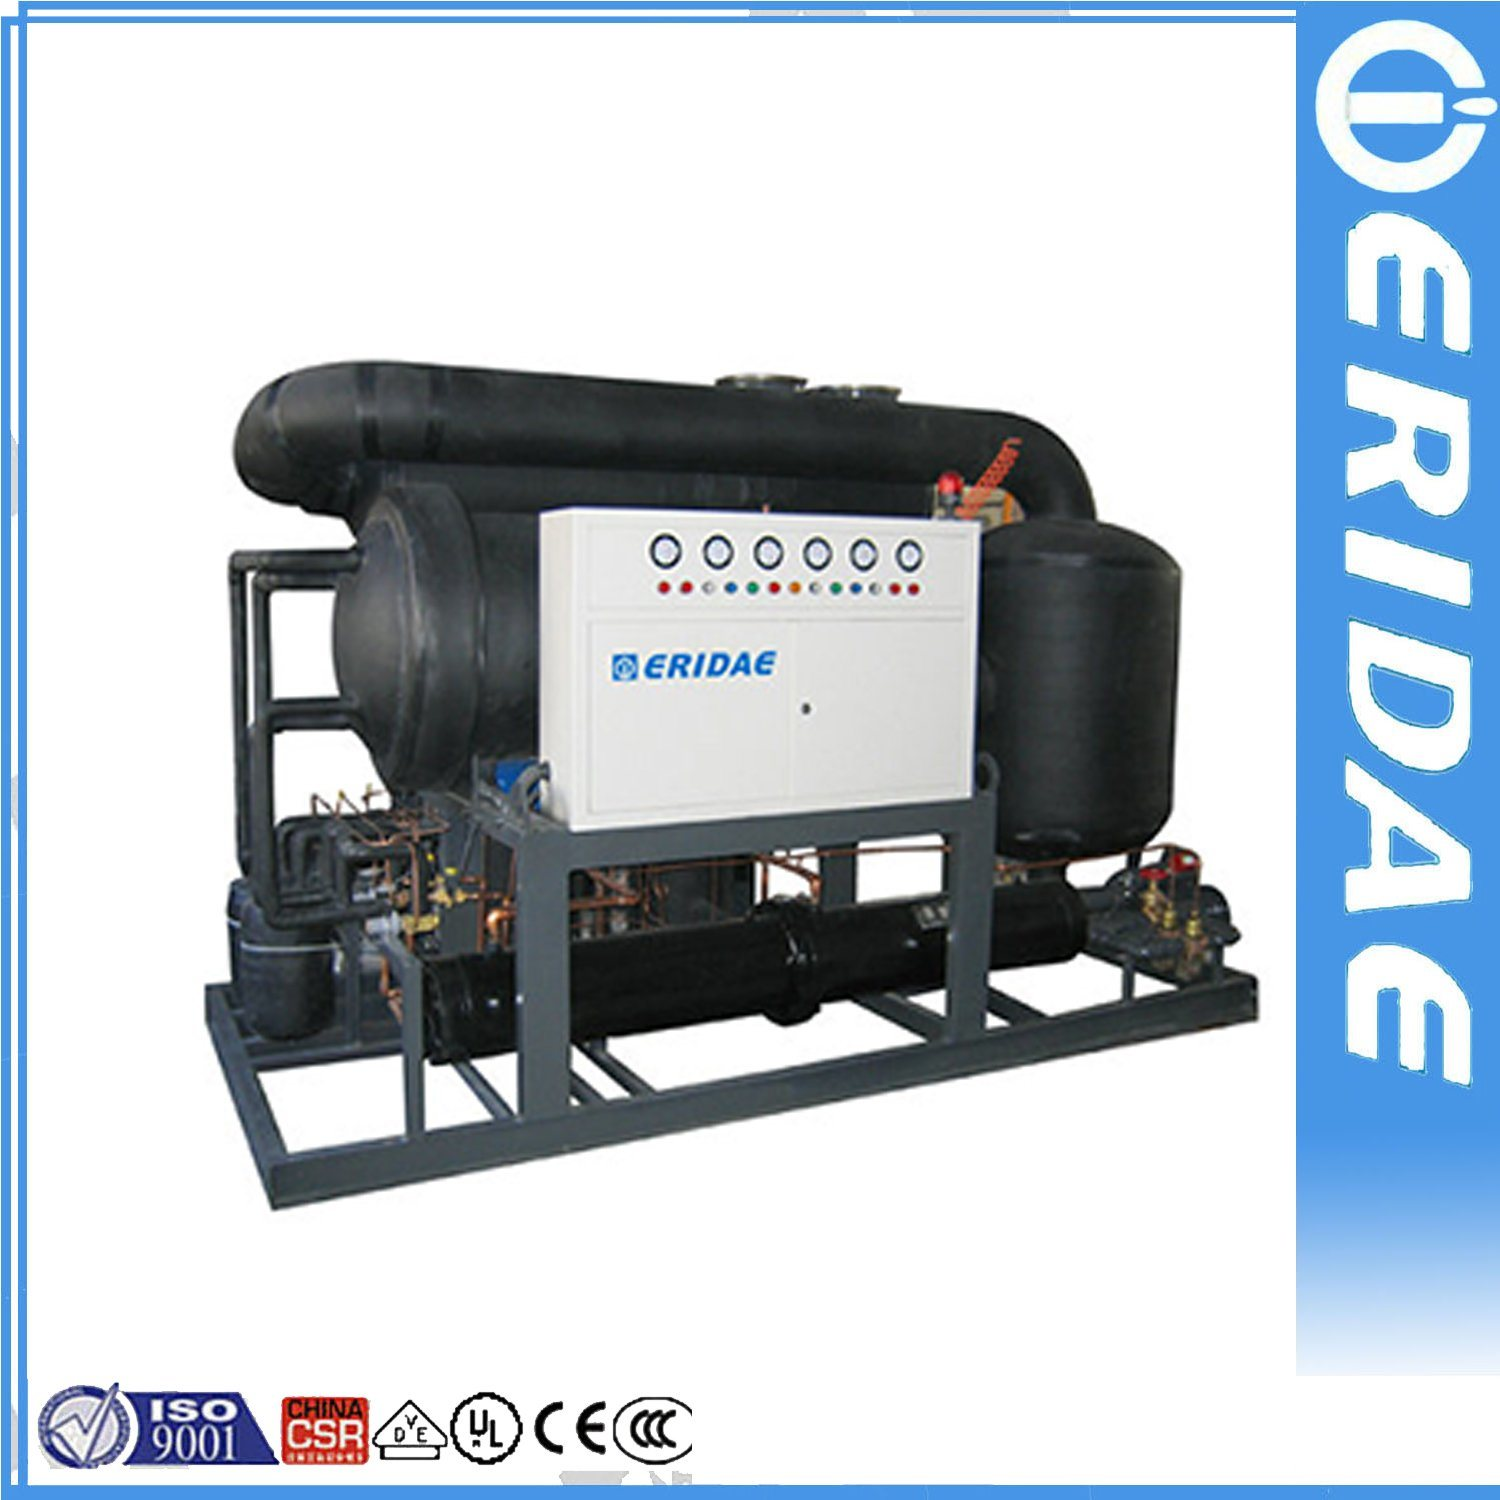 Air Dryer For Air Compressor >> China Freeze Refrigeration Air Dryer For Air Compressor At